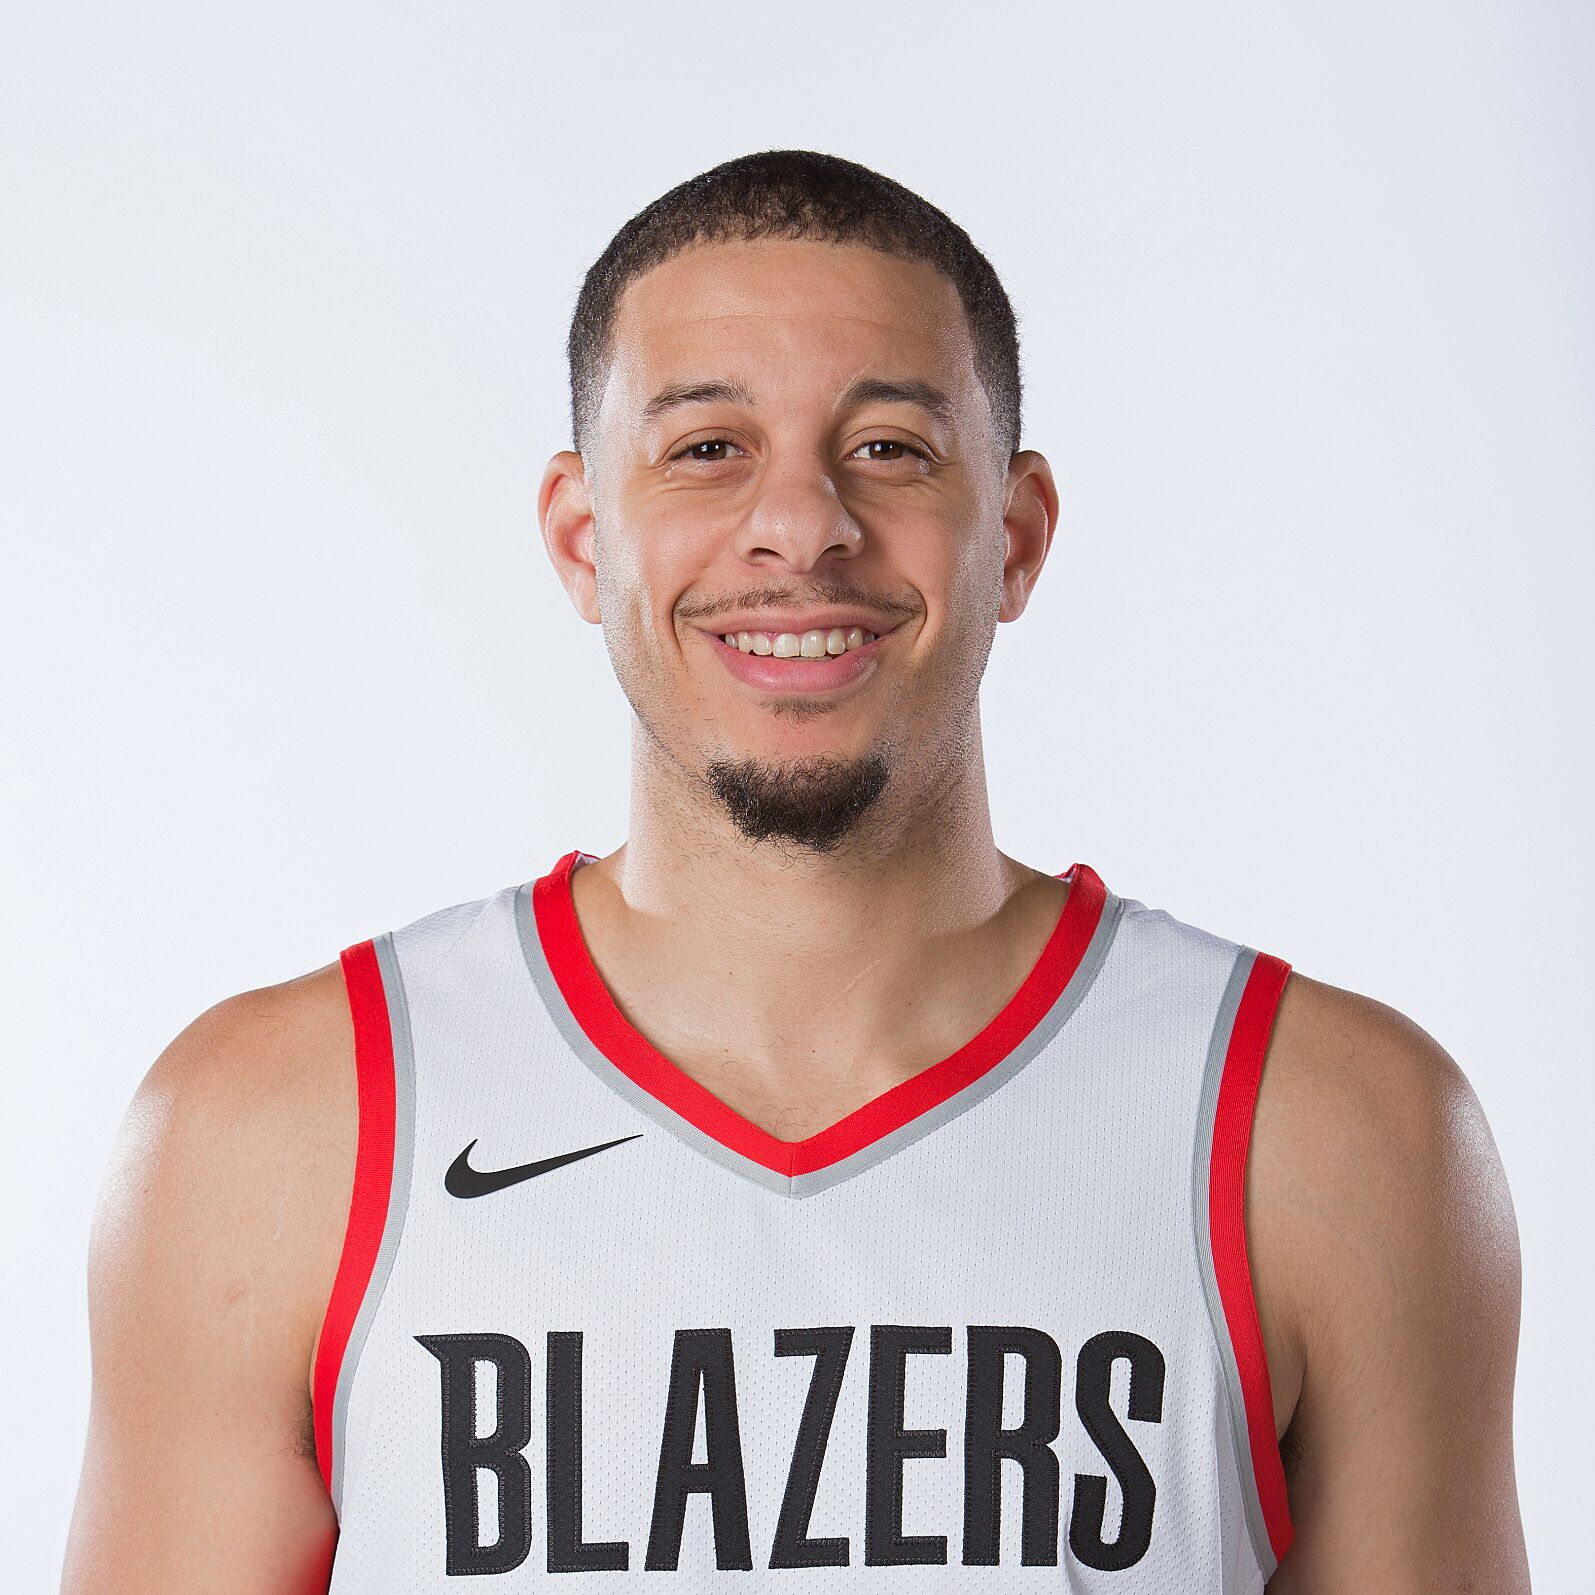 reputable site 7be4a 33fb5 Blazers: 5 goals for Seth Curry in his first season back ...